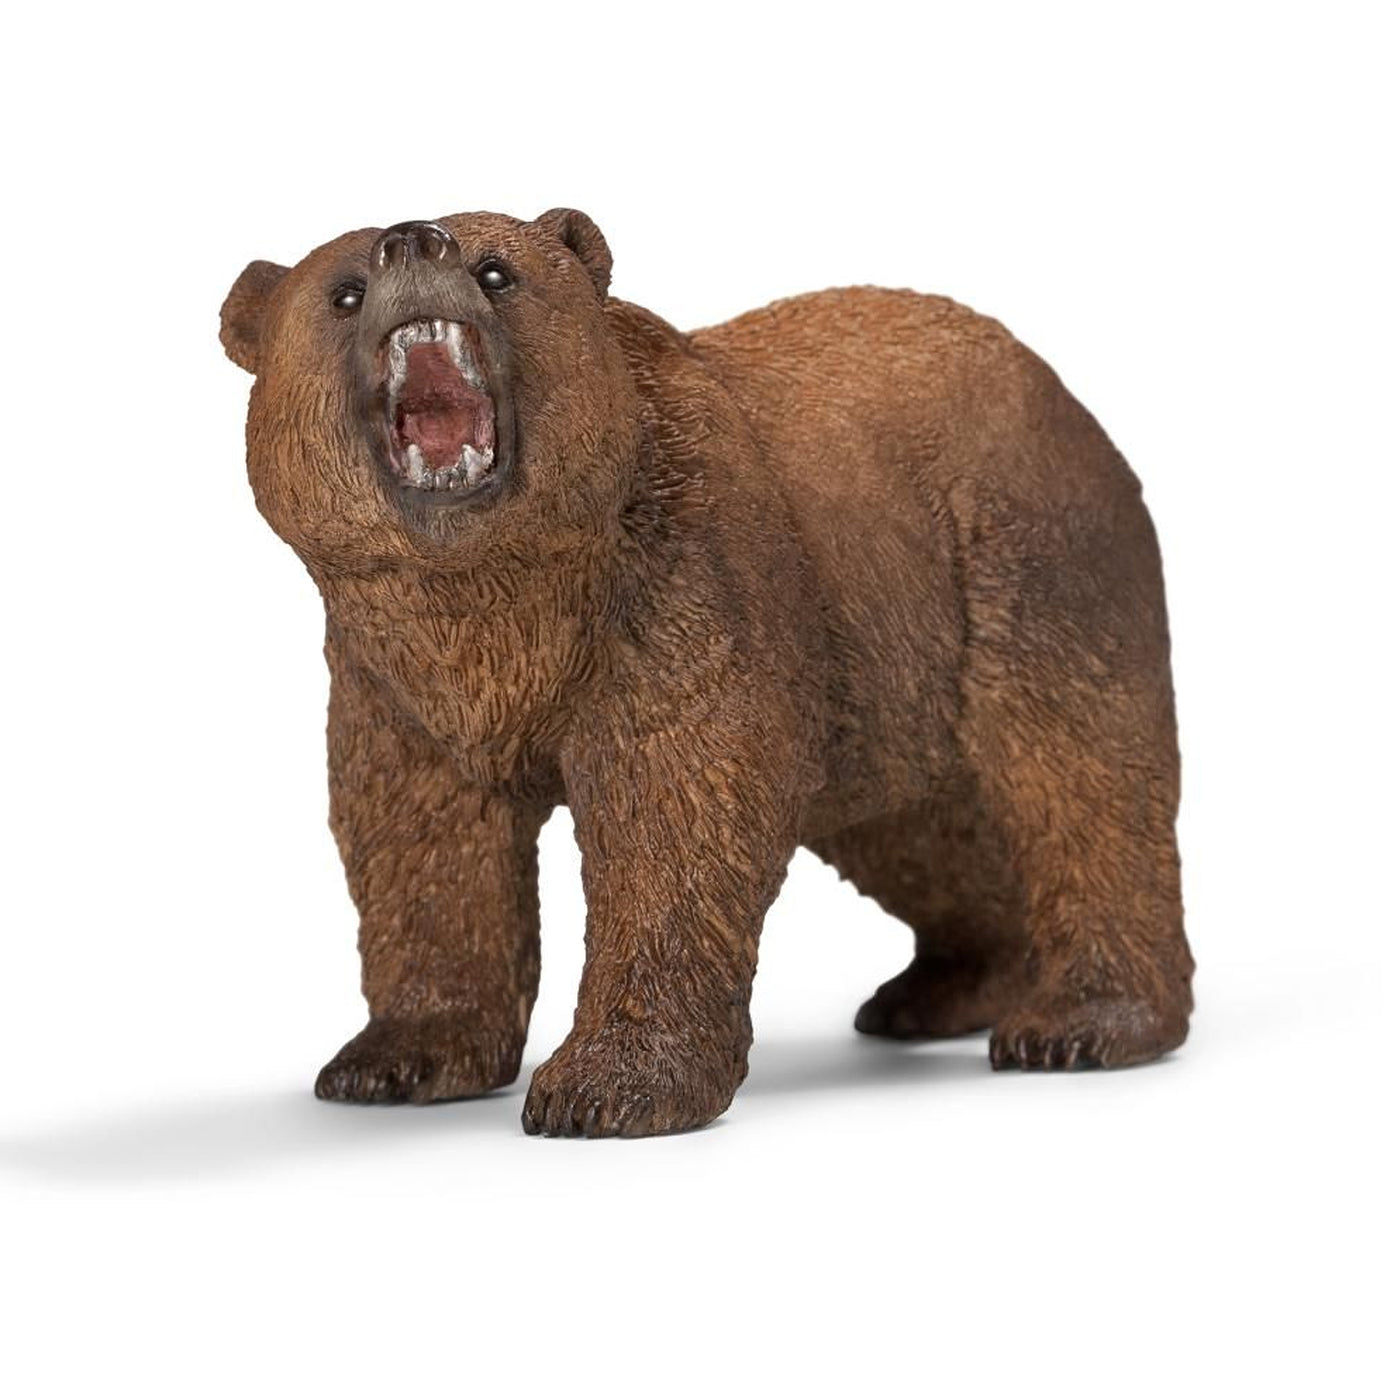 Schleich Wild Life Grizzly Bear Toy Figurine